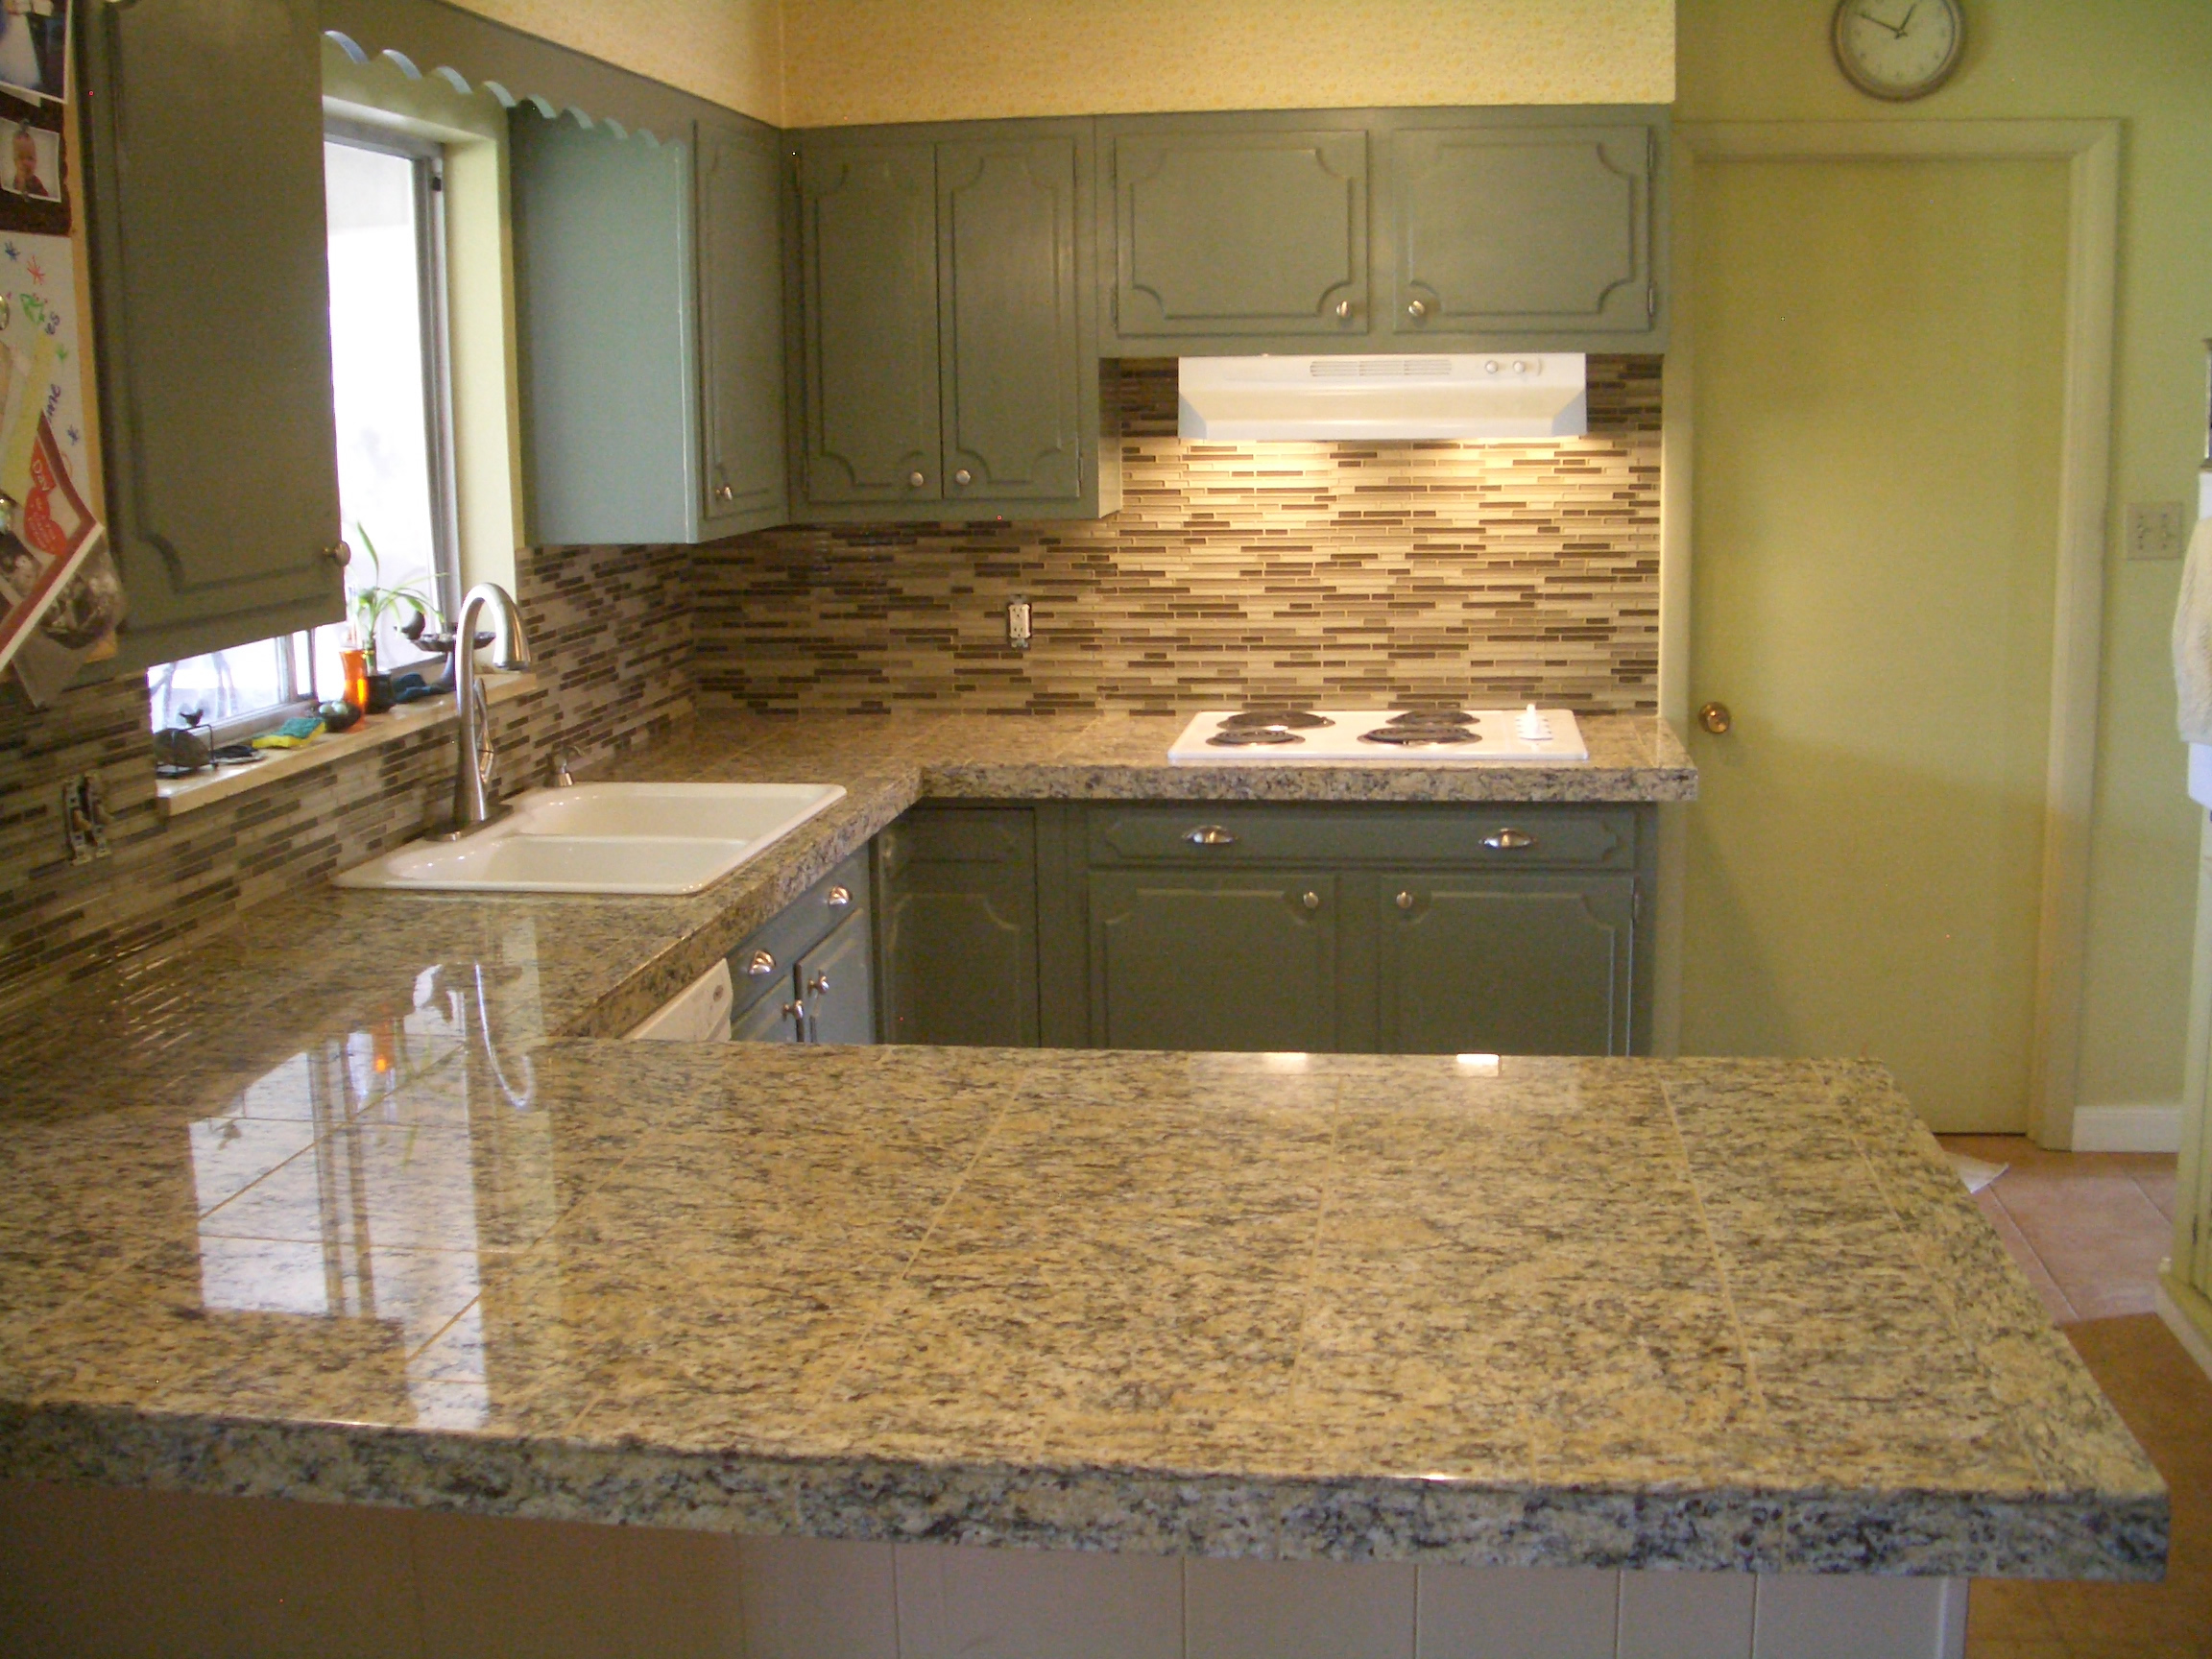 Glass tile kitchen backsplash special only 899 - Kitchen backsplash tile ...